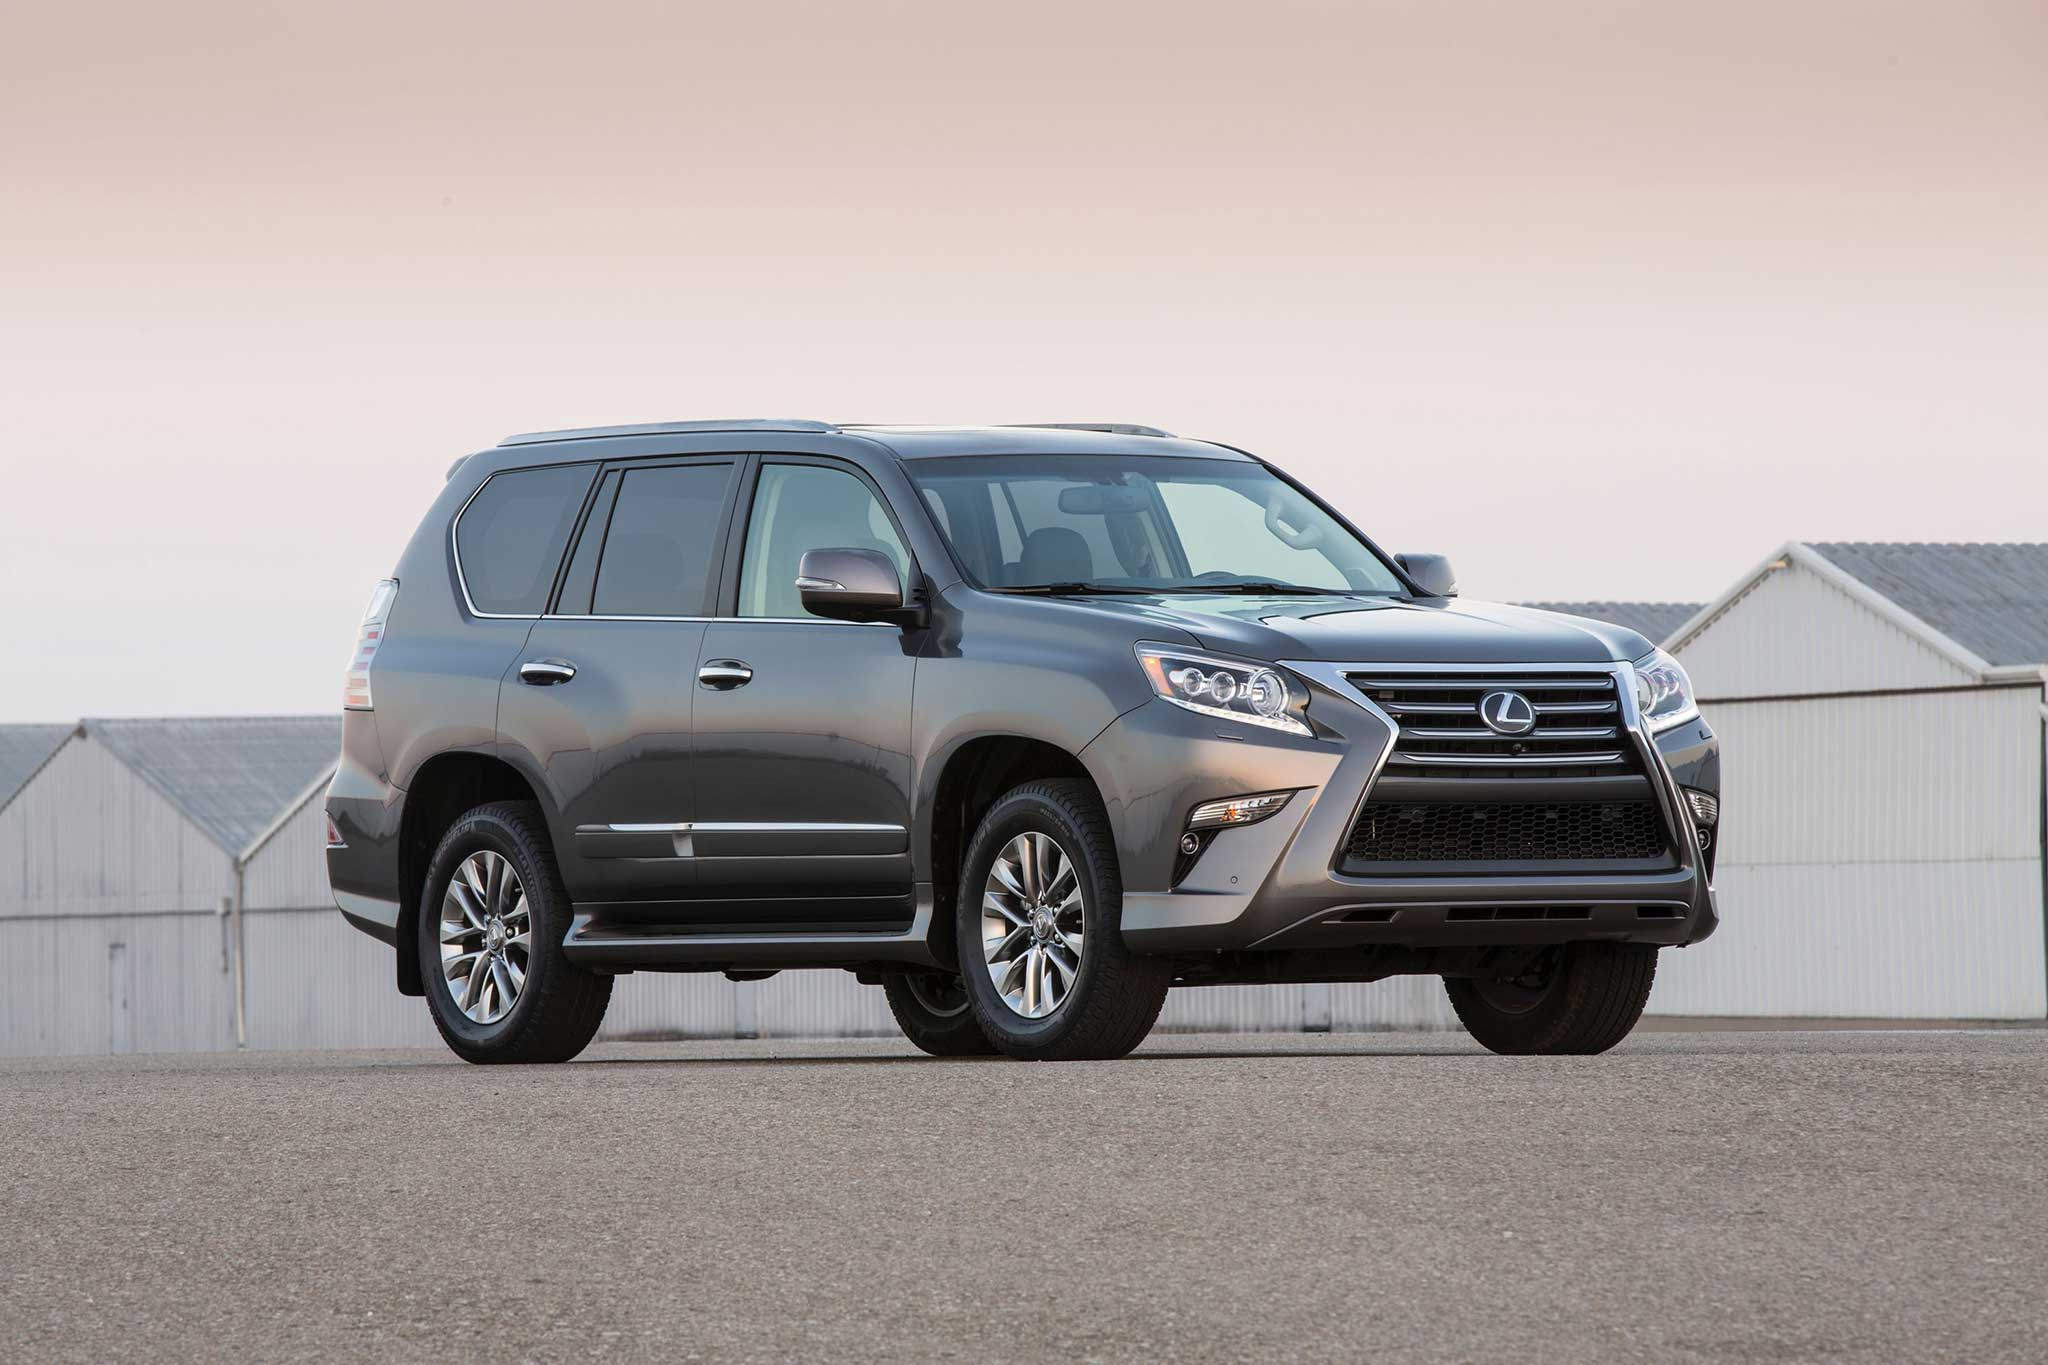 2016 Lexus GX460 Quick Take Review